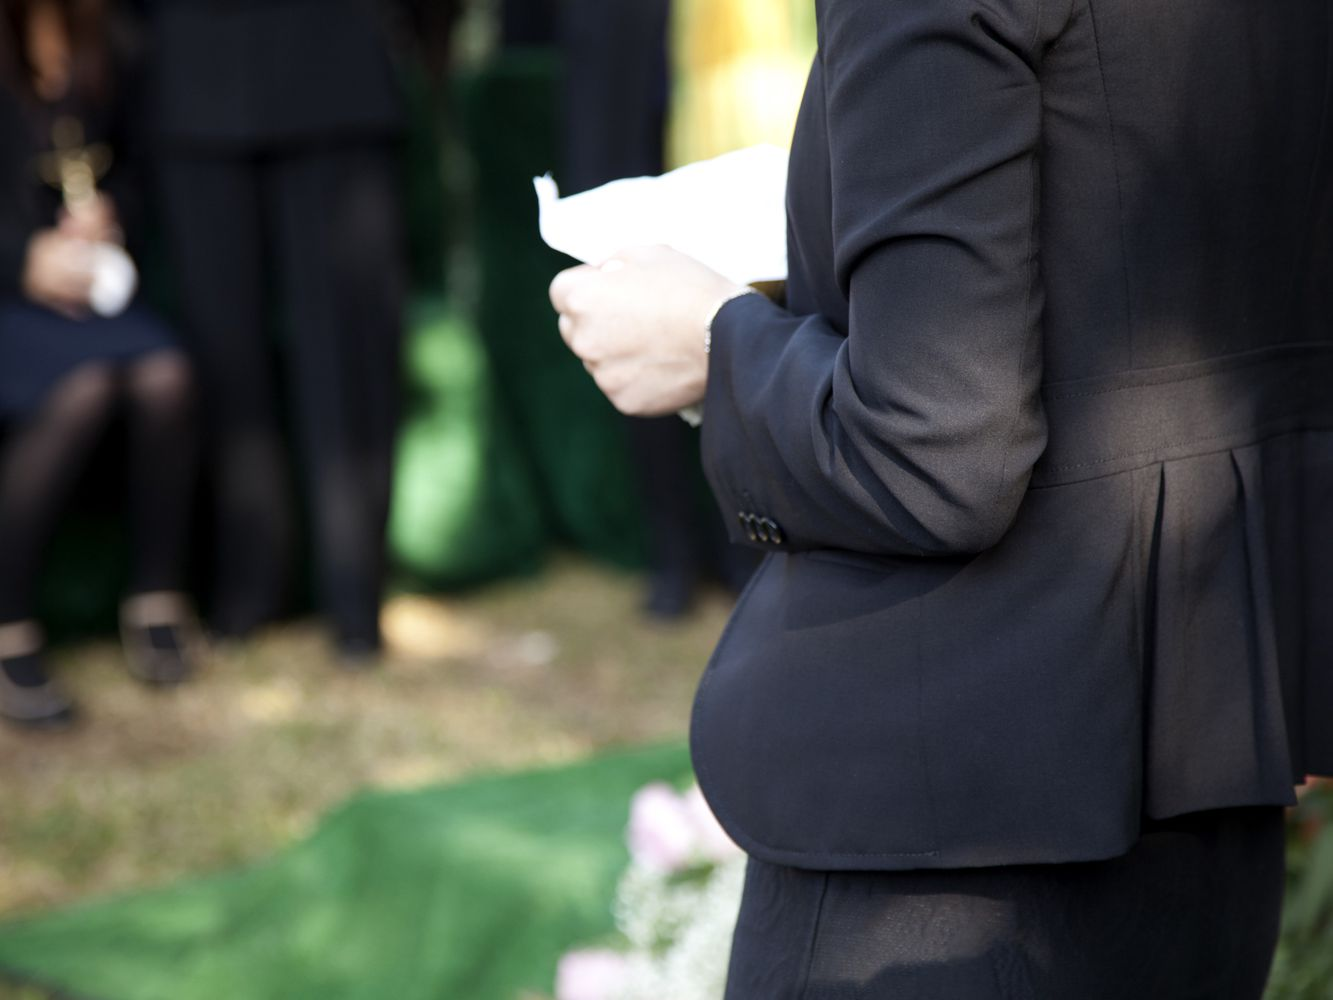 Christian Readings for a Baby's Funeral or Memorial